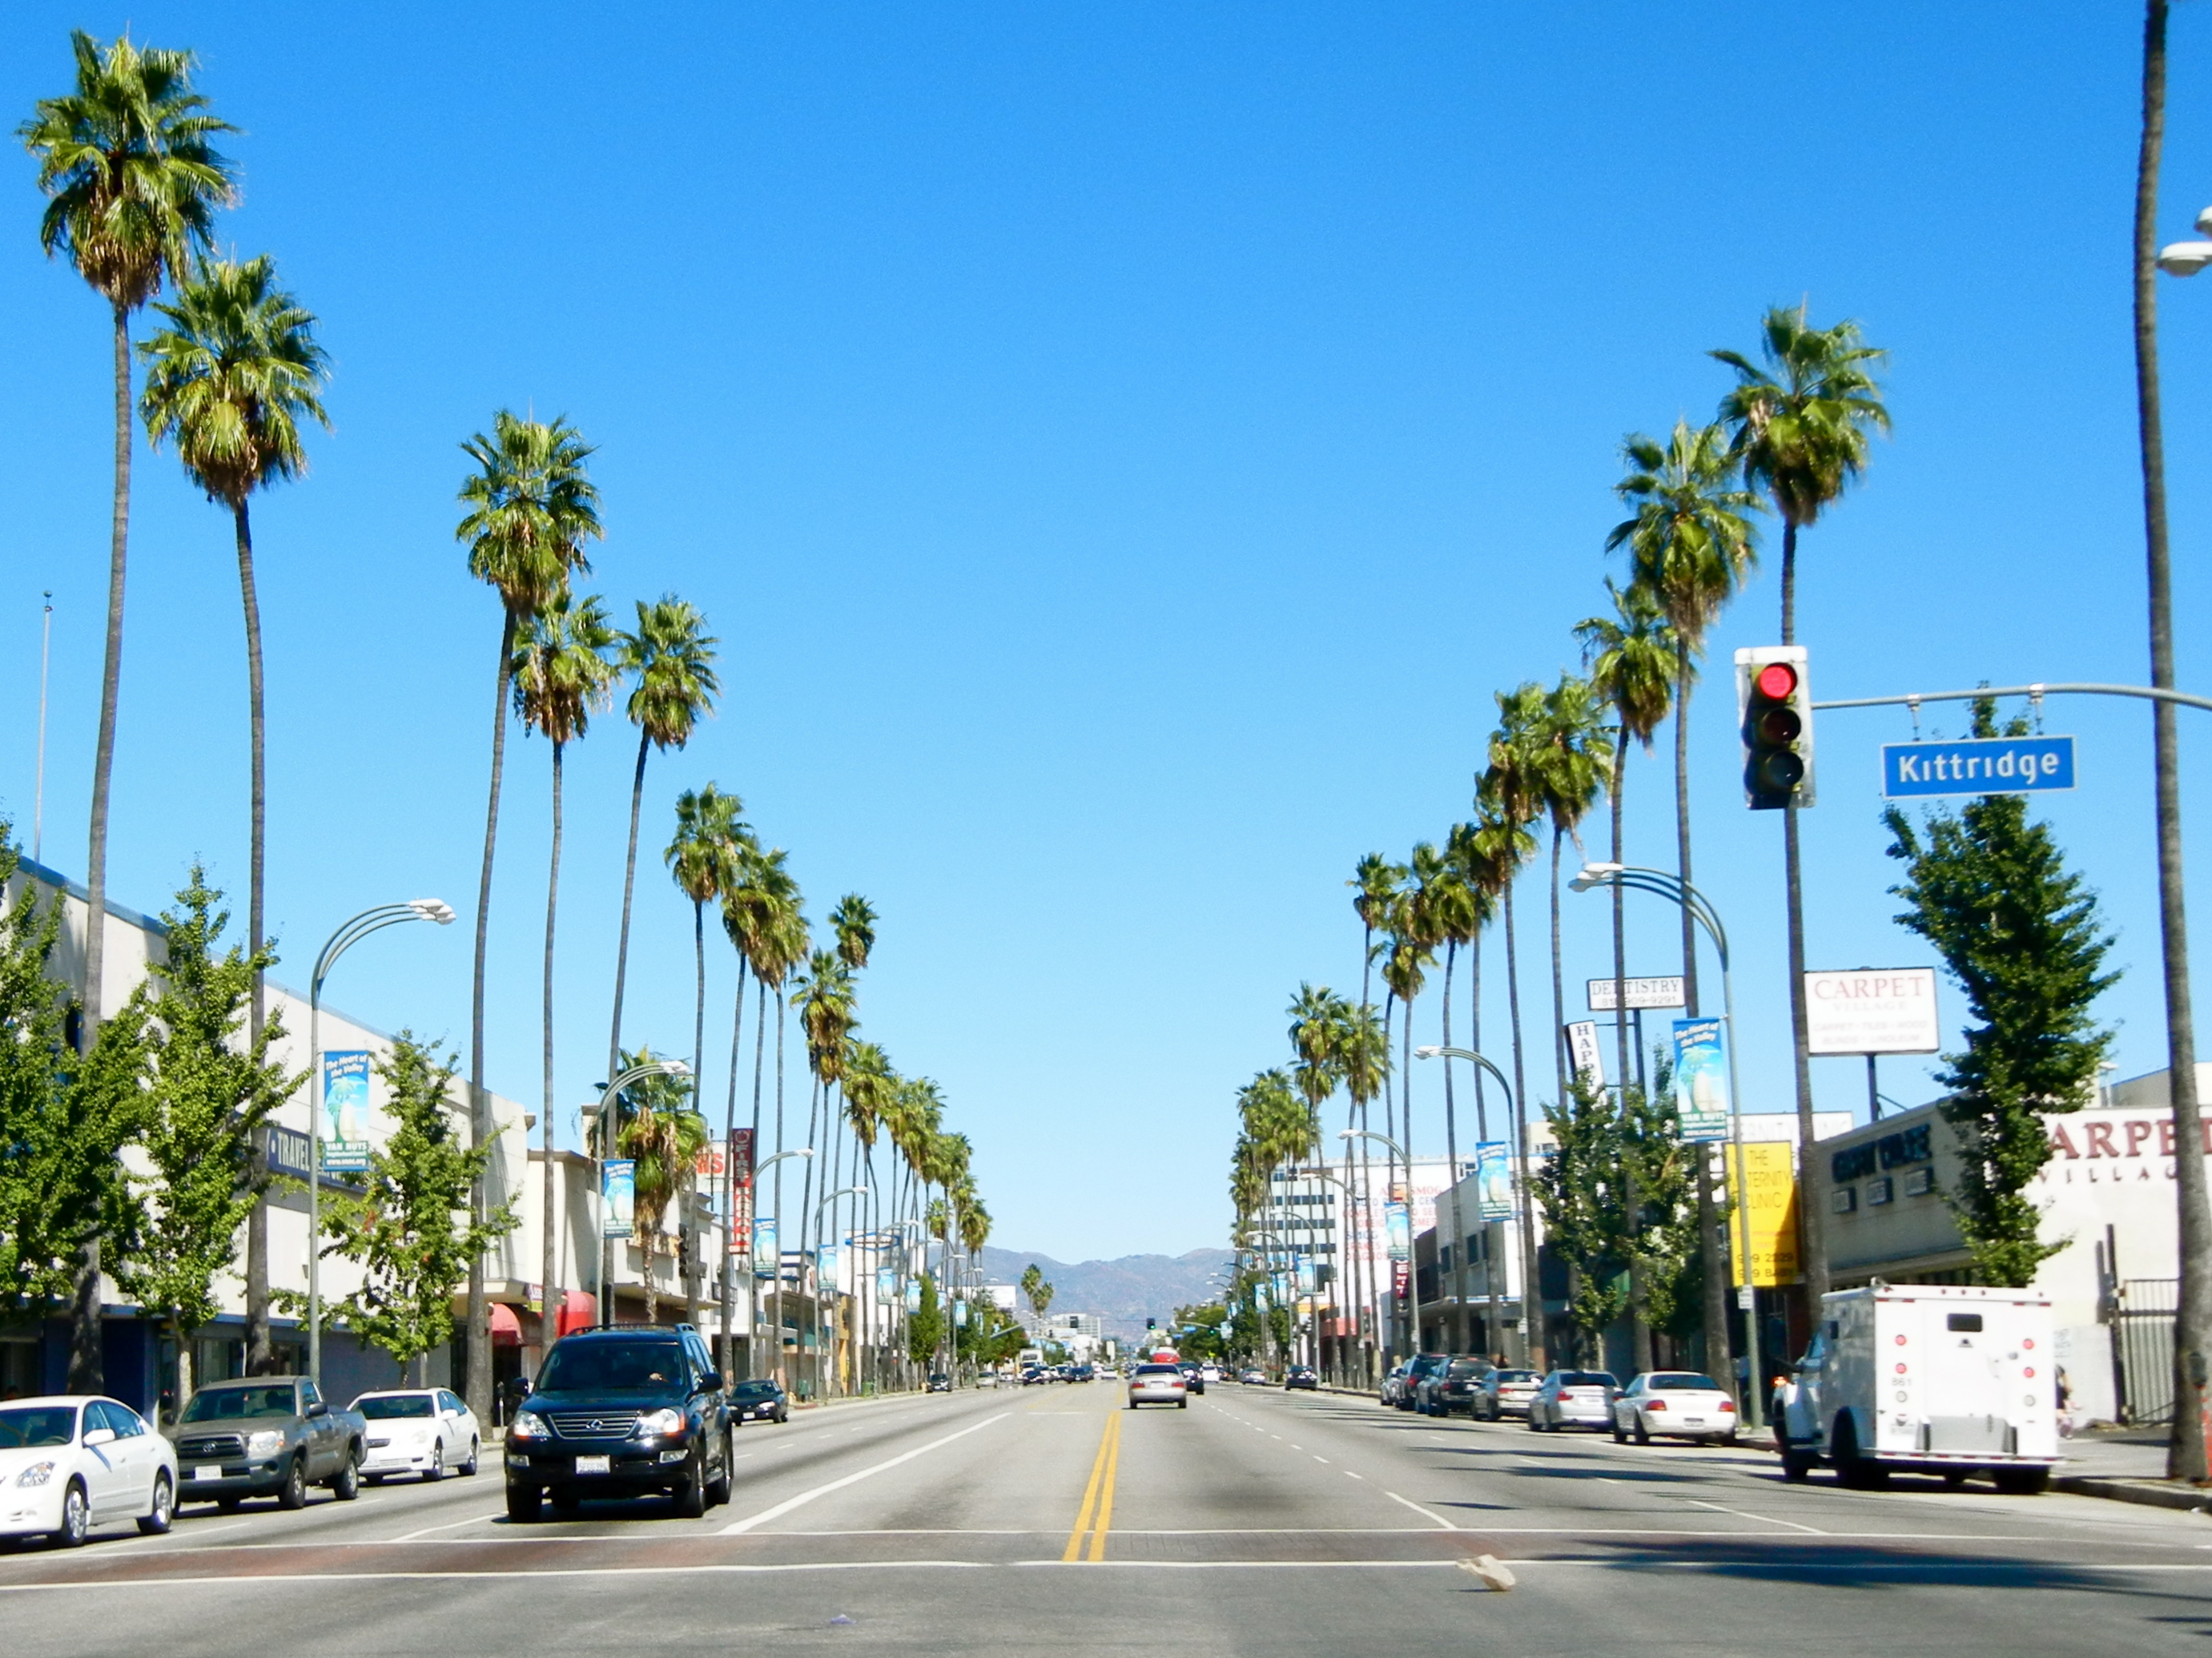 Los Angeles street lined with palm trees